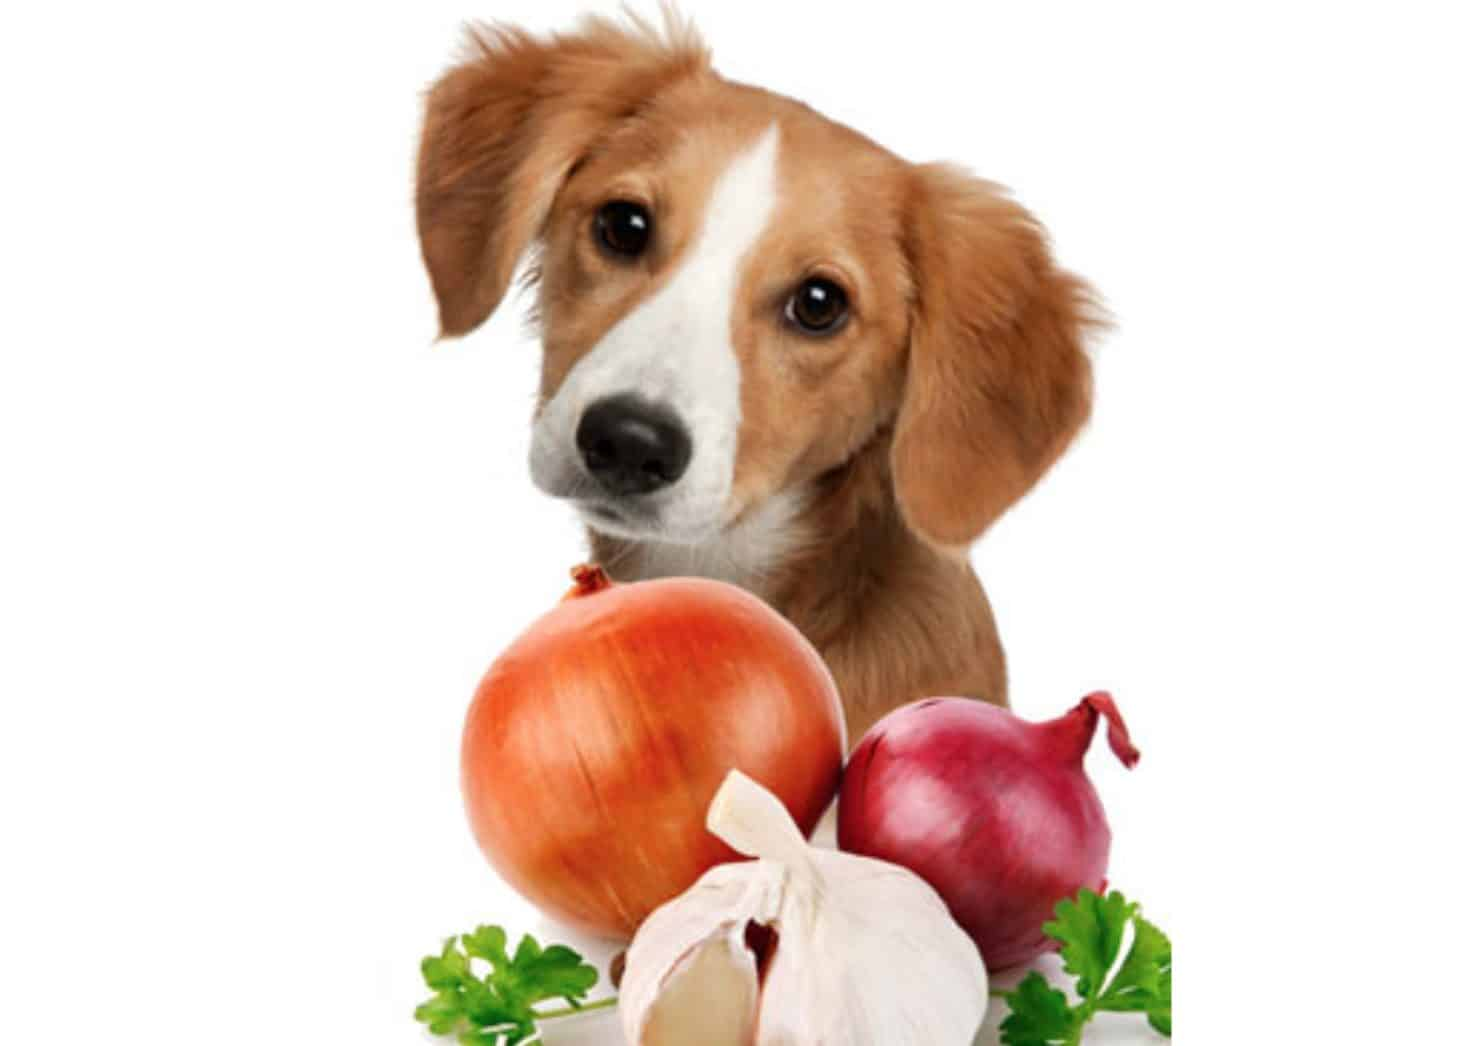 There are tons of risks and side effects that may occur if your dog eats enough onions.